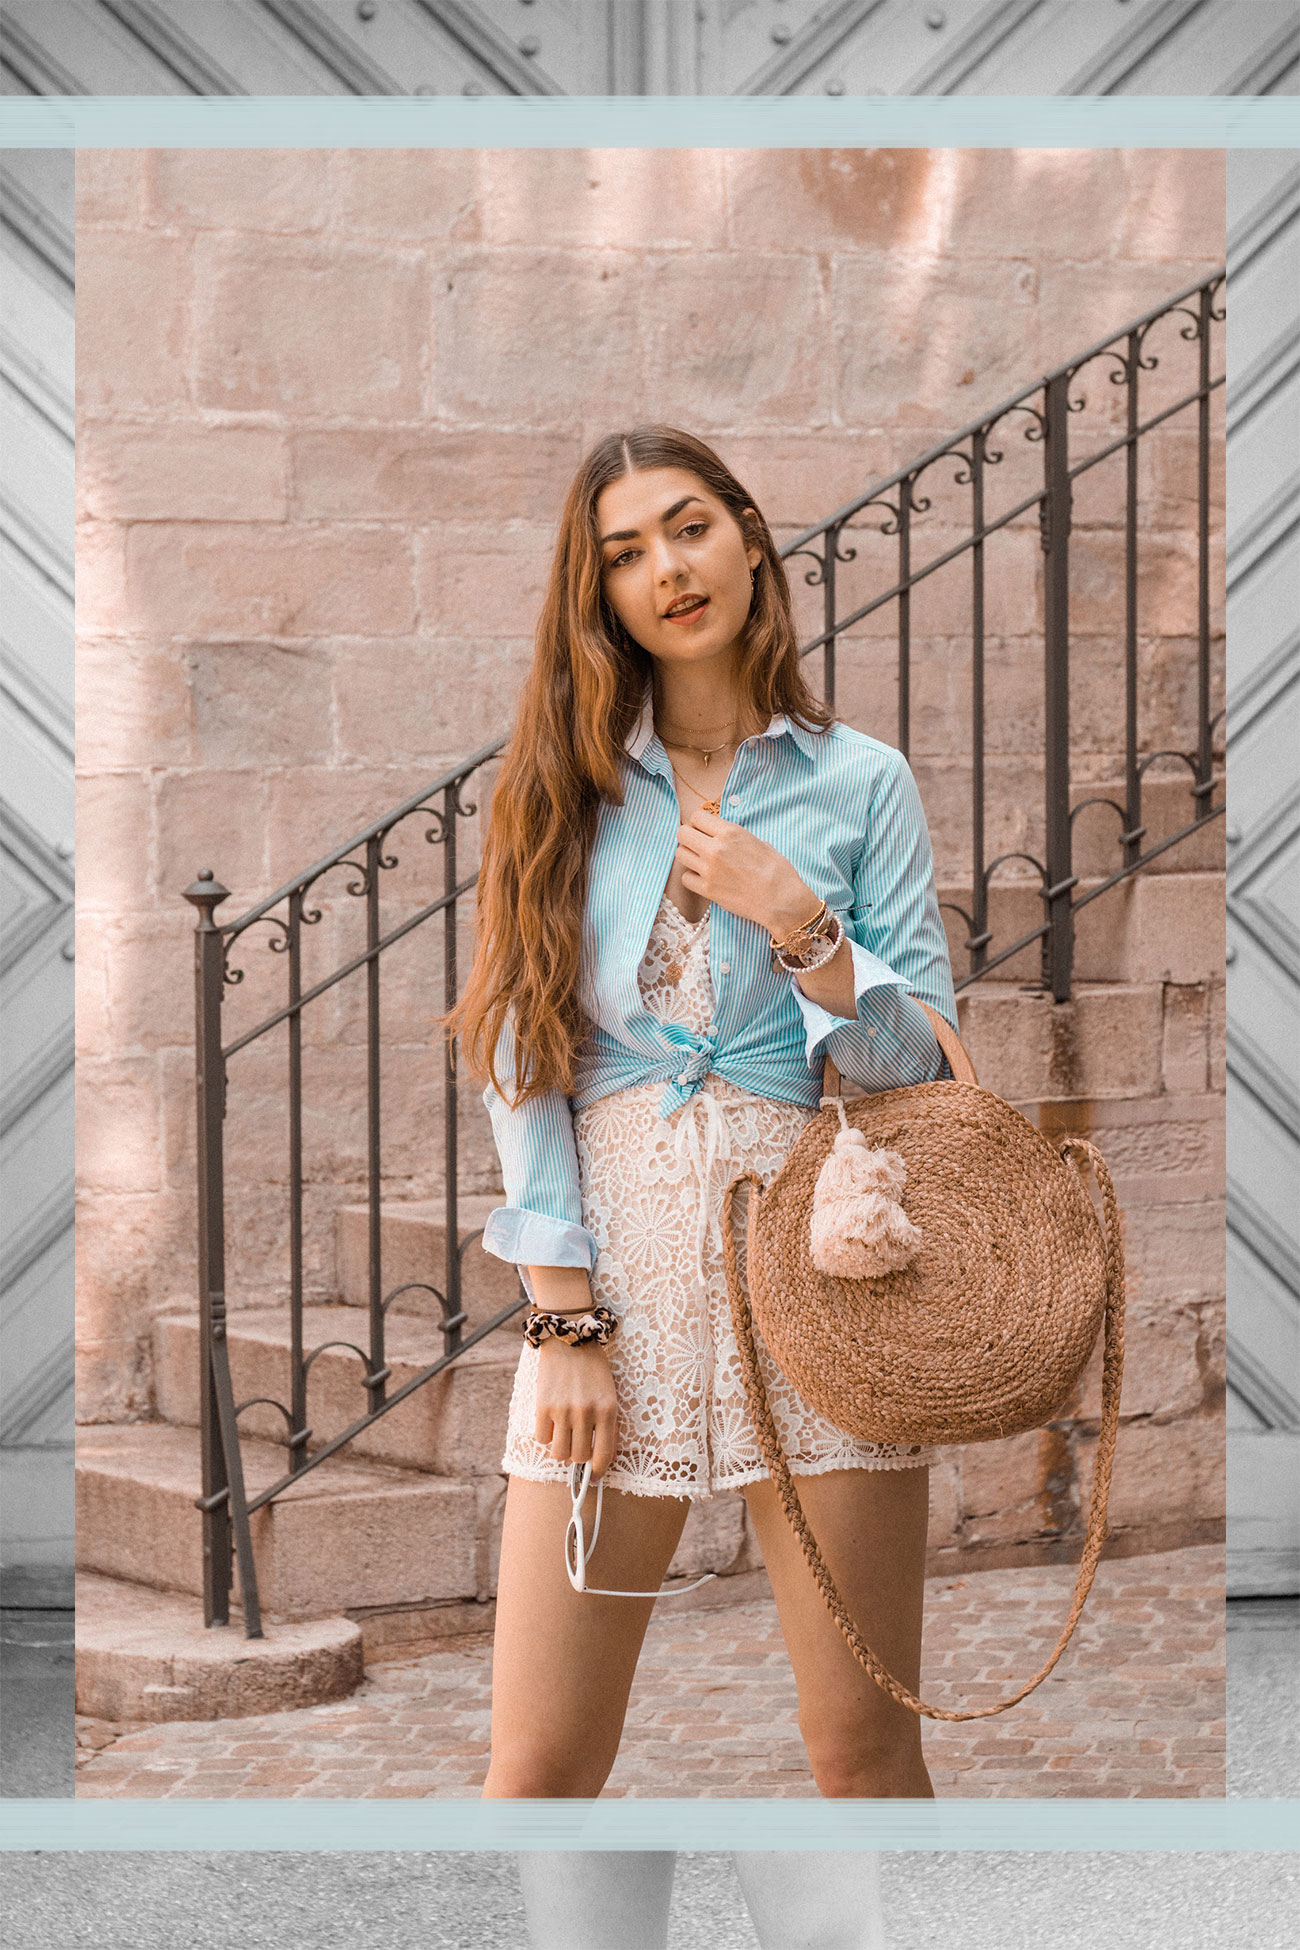 Fashion, Fashionblog, Fashion Magazine, Editorial, Style, Style Guide, Style Inspiration, Streetwear, Street Style, Swiss, Switzerland, Outift, OOTD, Outfit Inspiration, Inspo, Girly, Romper, Jumpsuit, Lace, Shirt, Straw Bag, Summer, Trend, Trendsetter, Zurich